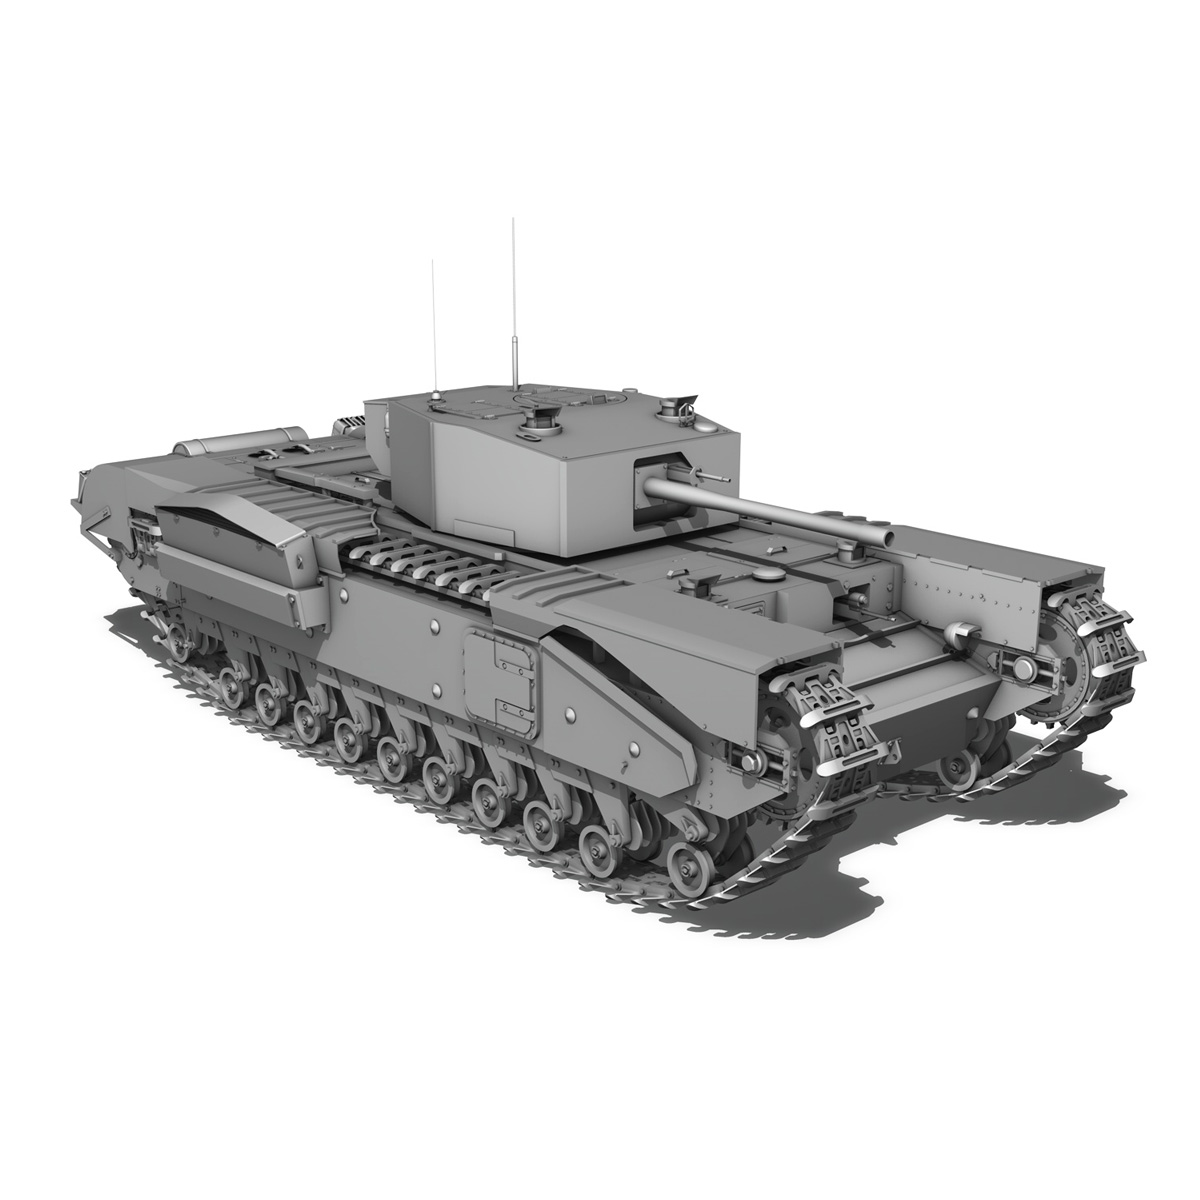 churchill mk iii - 517 - soviet army 3d загвар 3ds fbx c4d lwo obj 272984